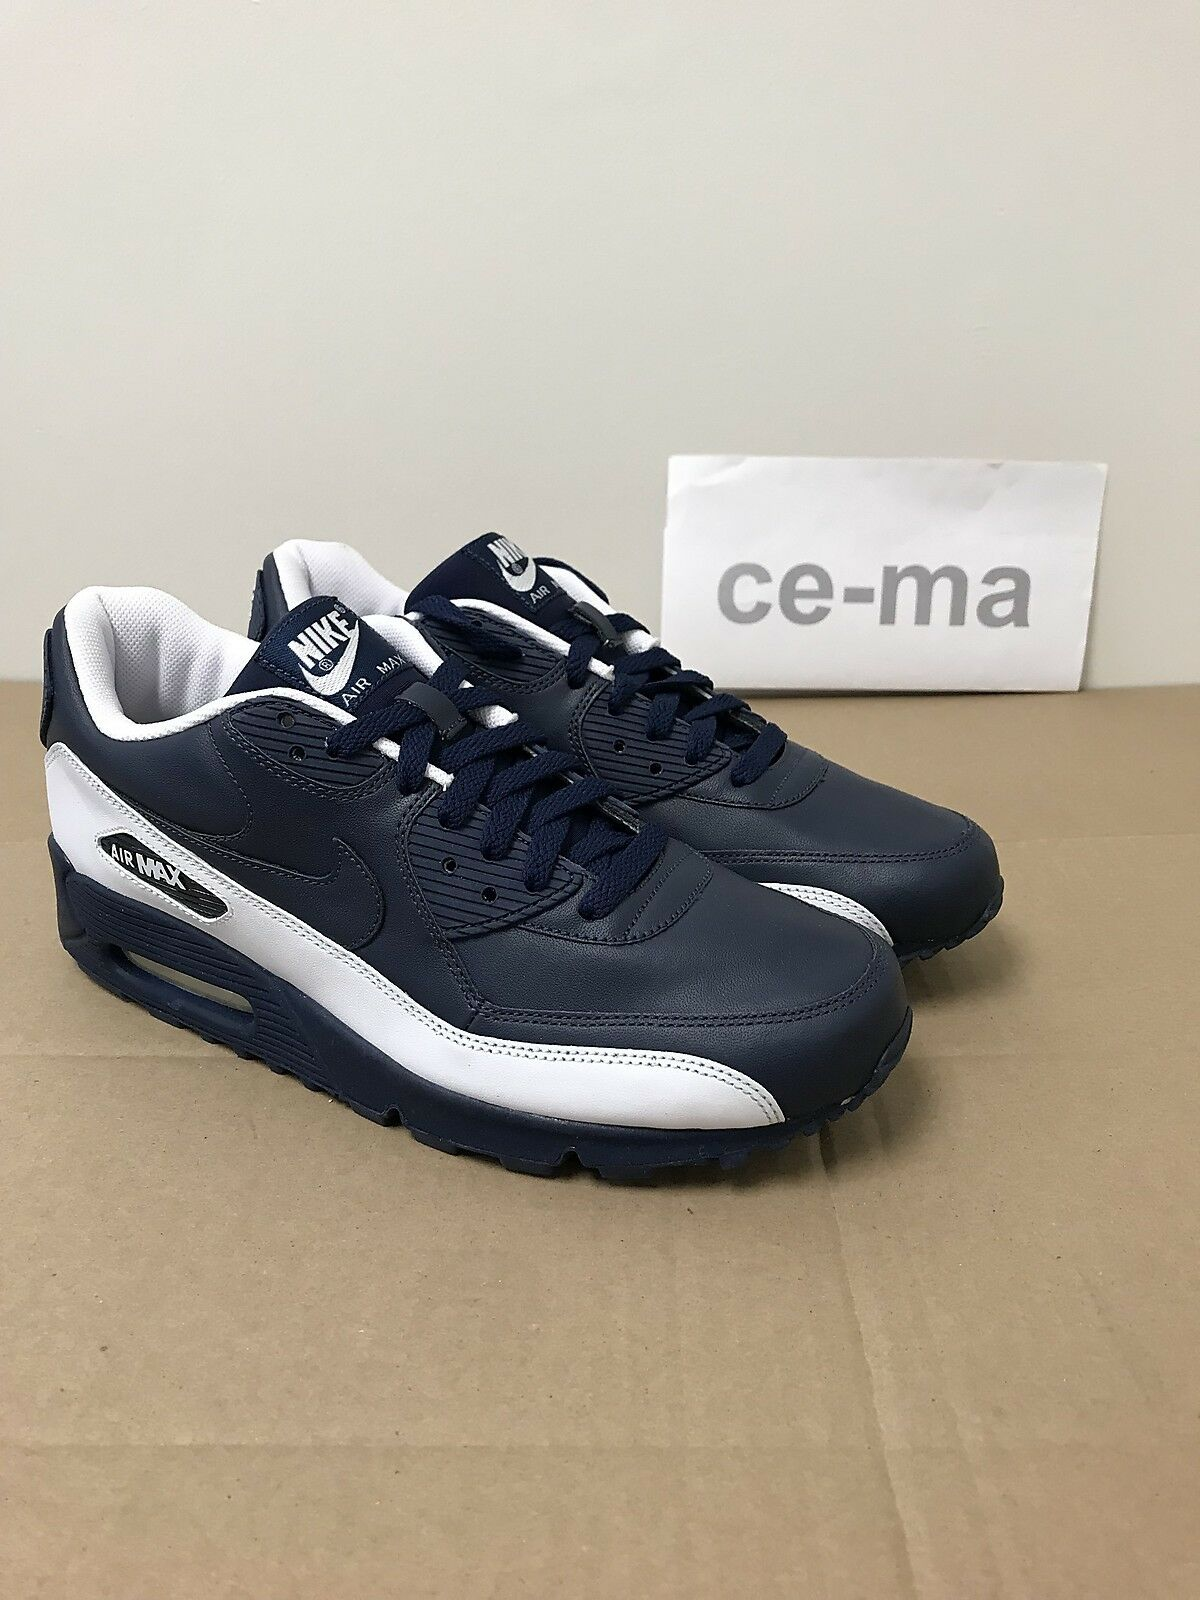 Nike Air Max 90 Midnight Navy Made in Korea 302519-441 Rare Limited Sample US 9